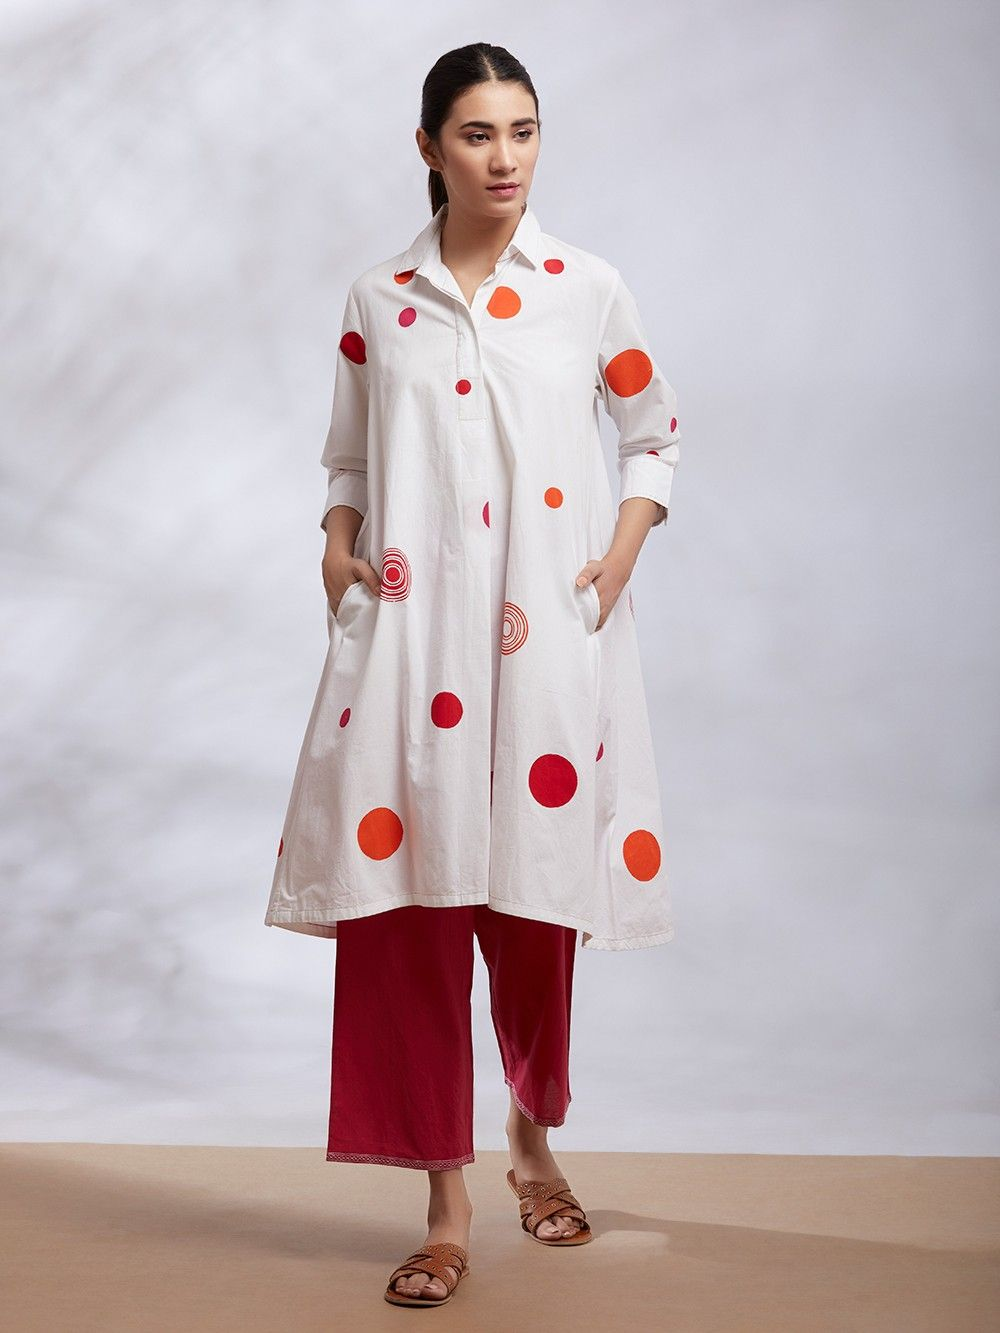 978678f798d0c4 Buy White Polka Dot Hand Block Printed Cotton Kurta online at Theloom